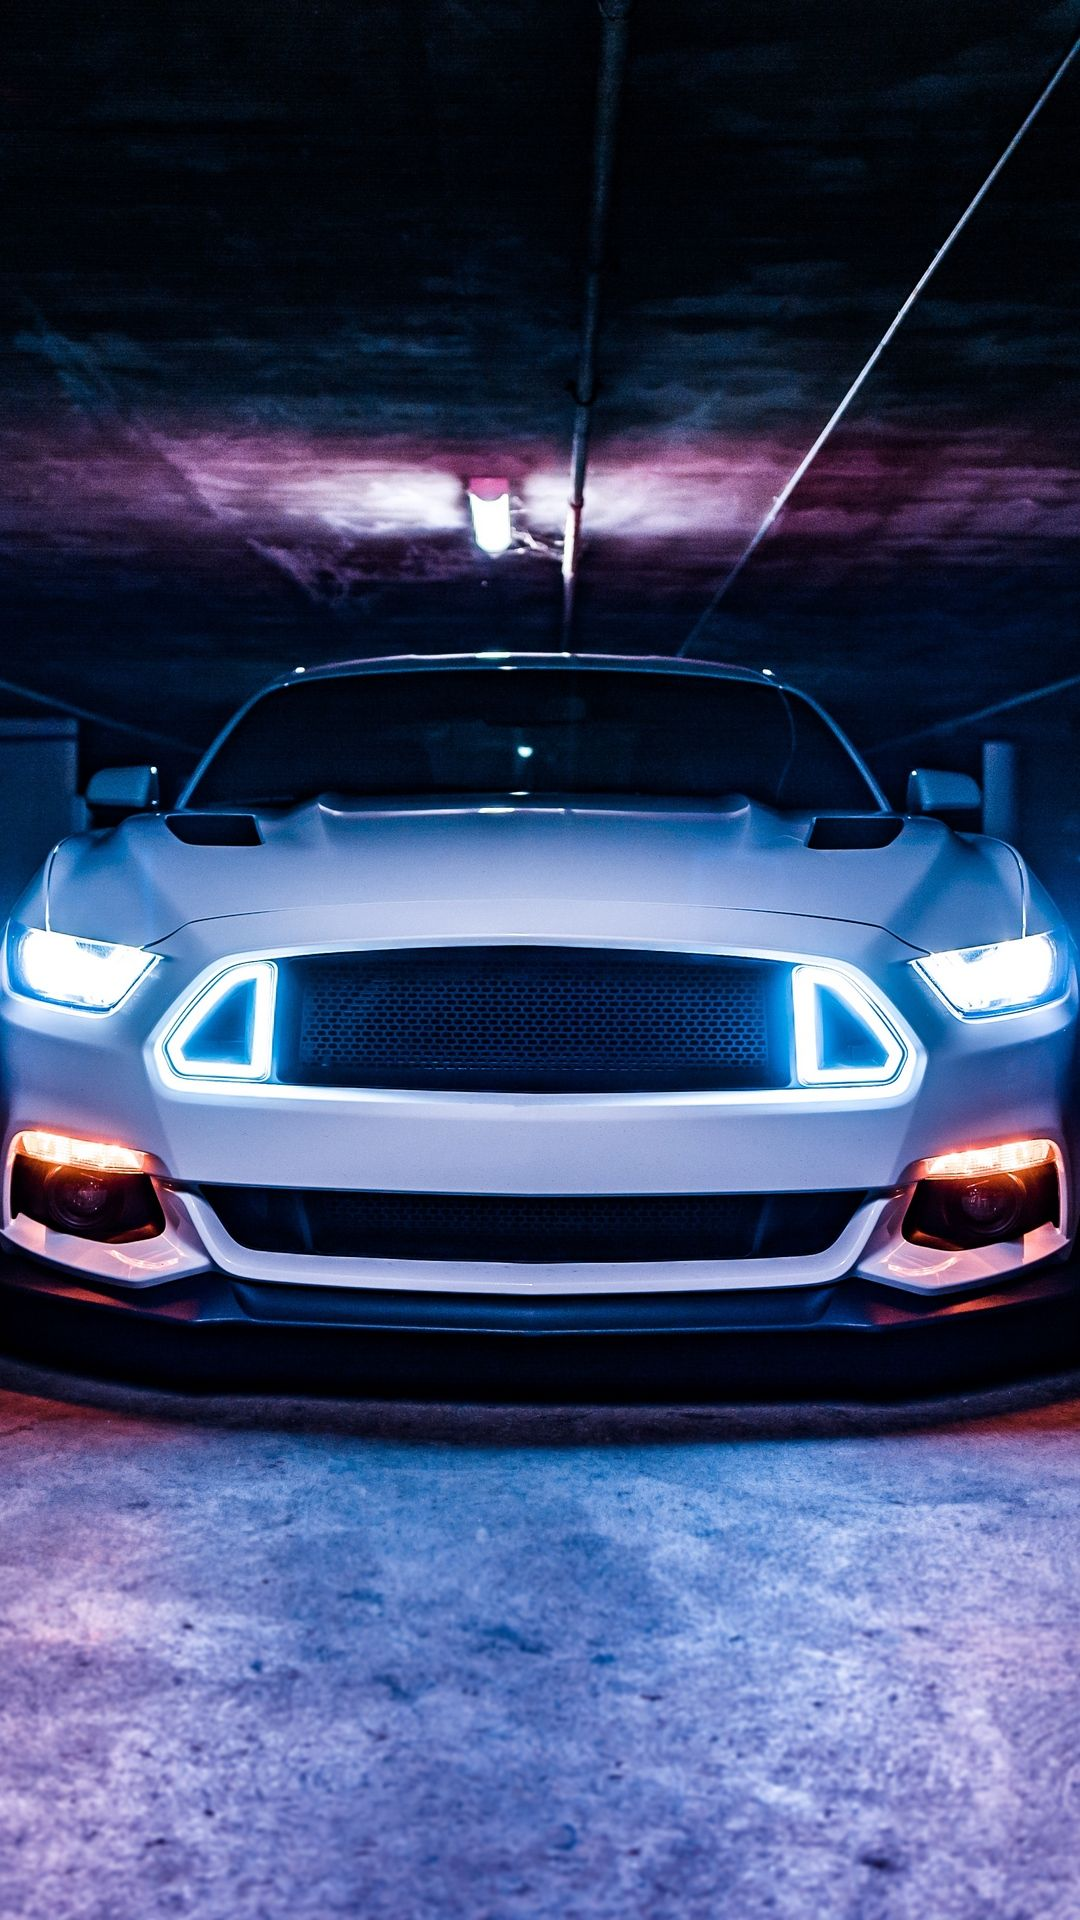 For Iphone App Search For Socihoro On App Store Ford Mustang